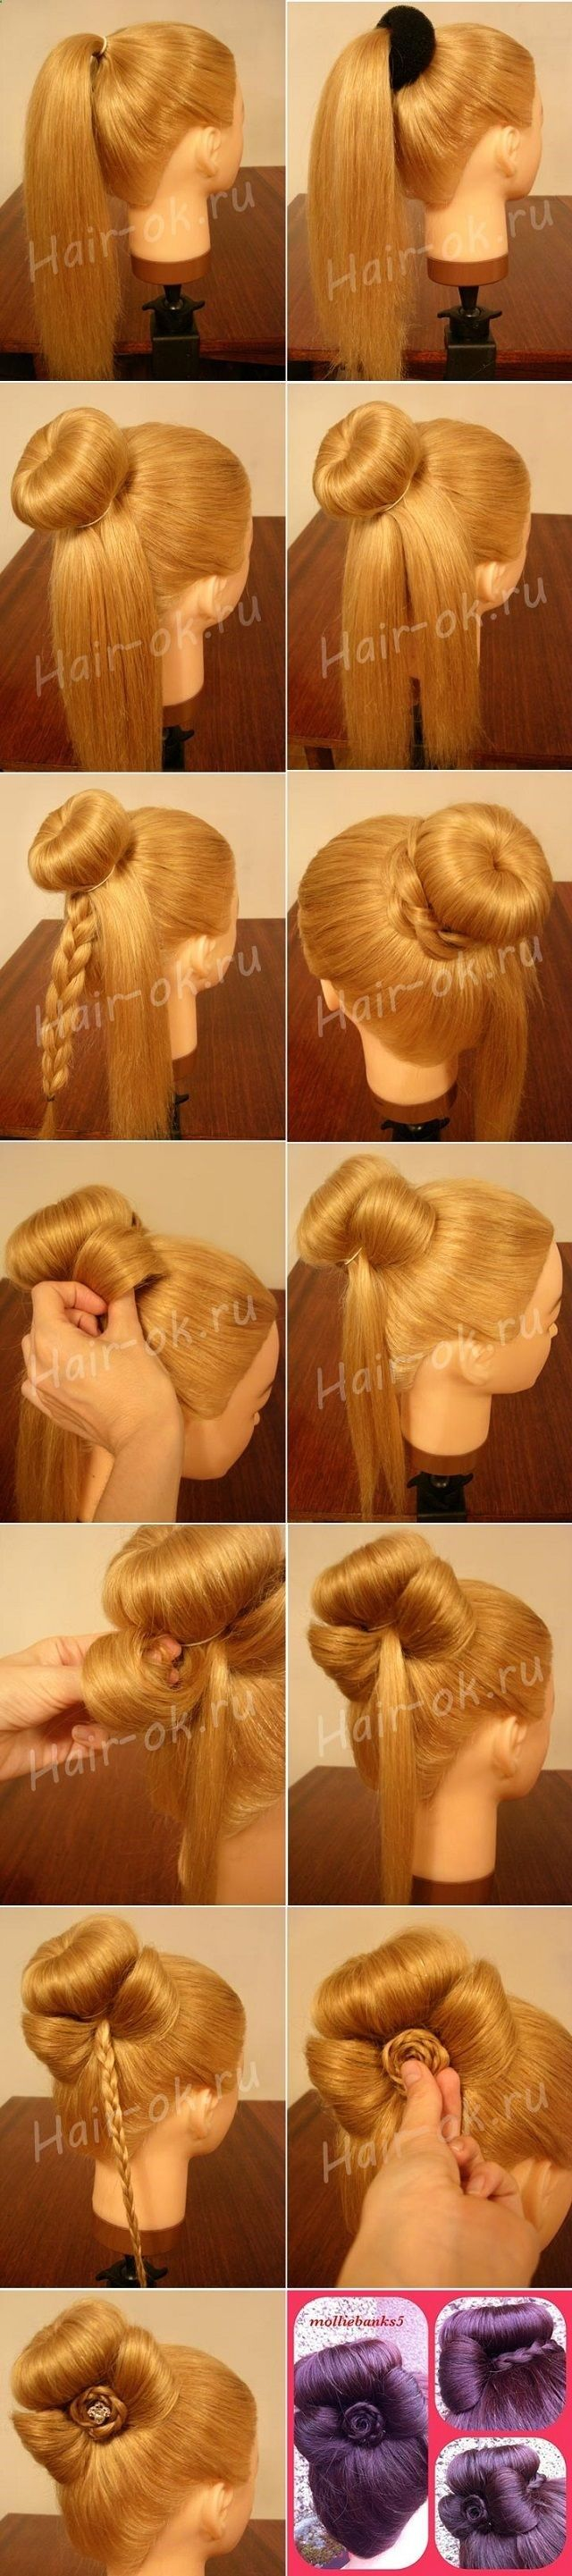 And this is why i can't do any cool hairstyles because I'm still stuck on how they went from step 2 to 3.